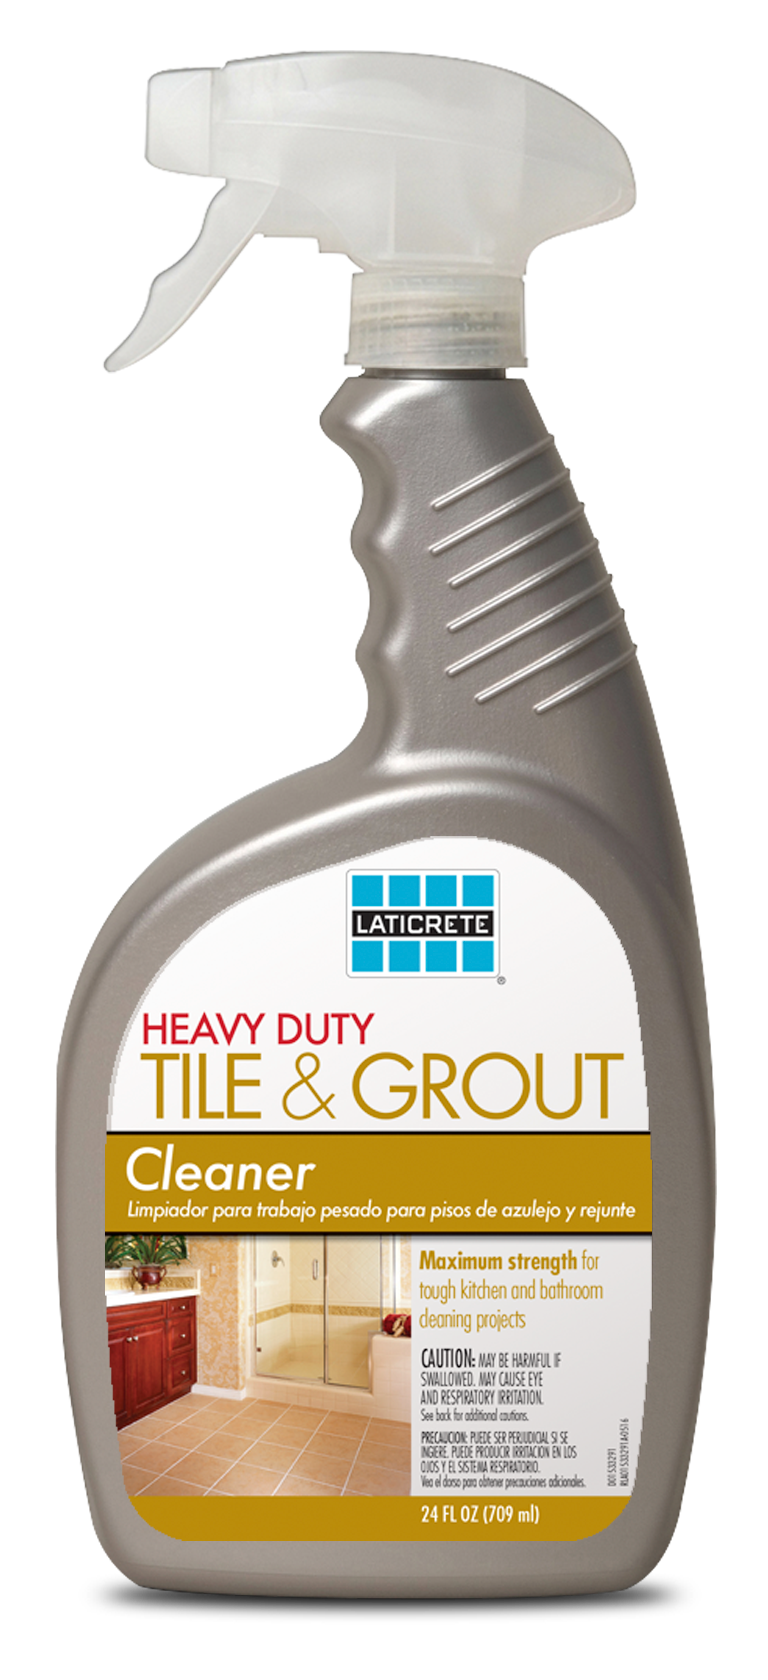 Laticrete Heavy Duty Tile Grout Cleaner